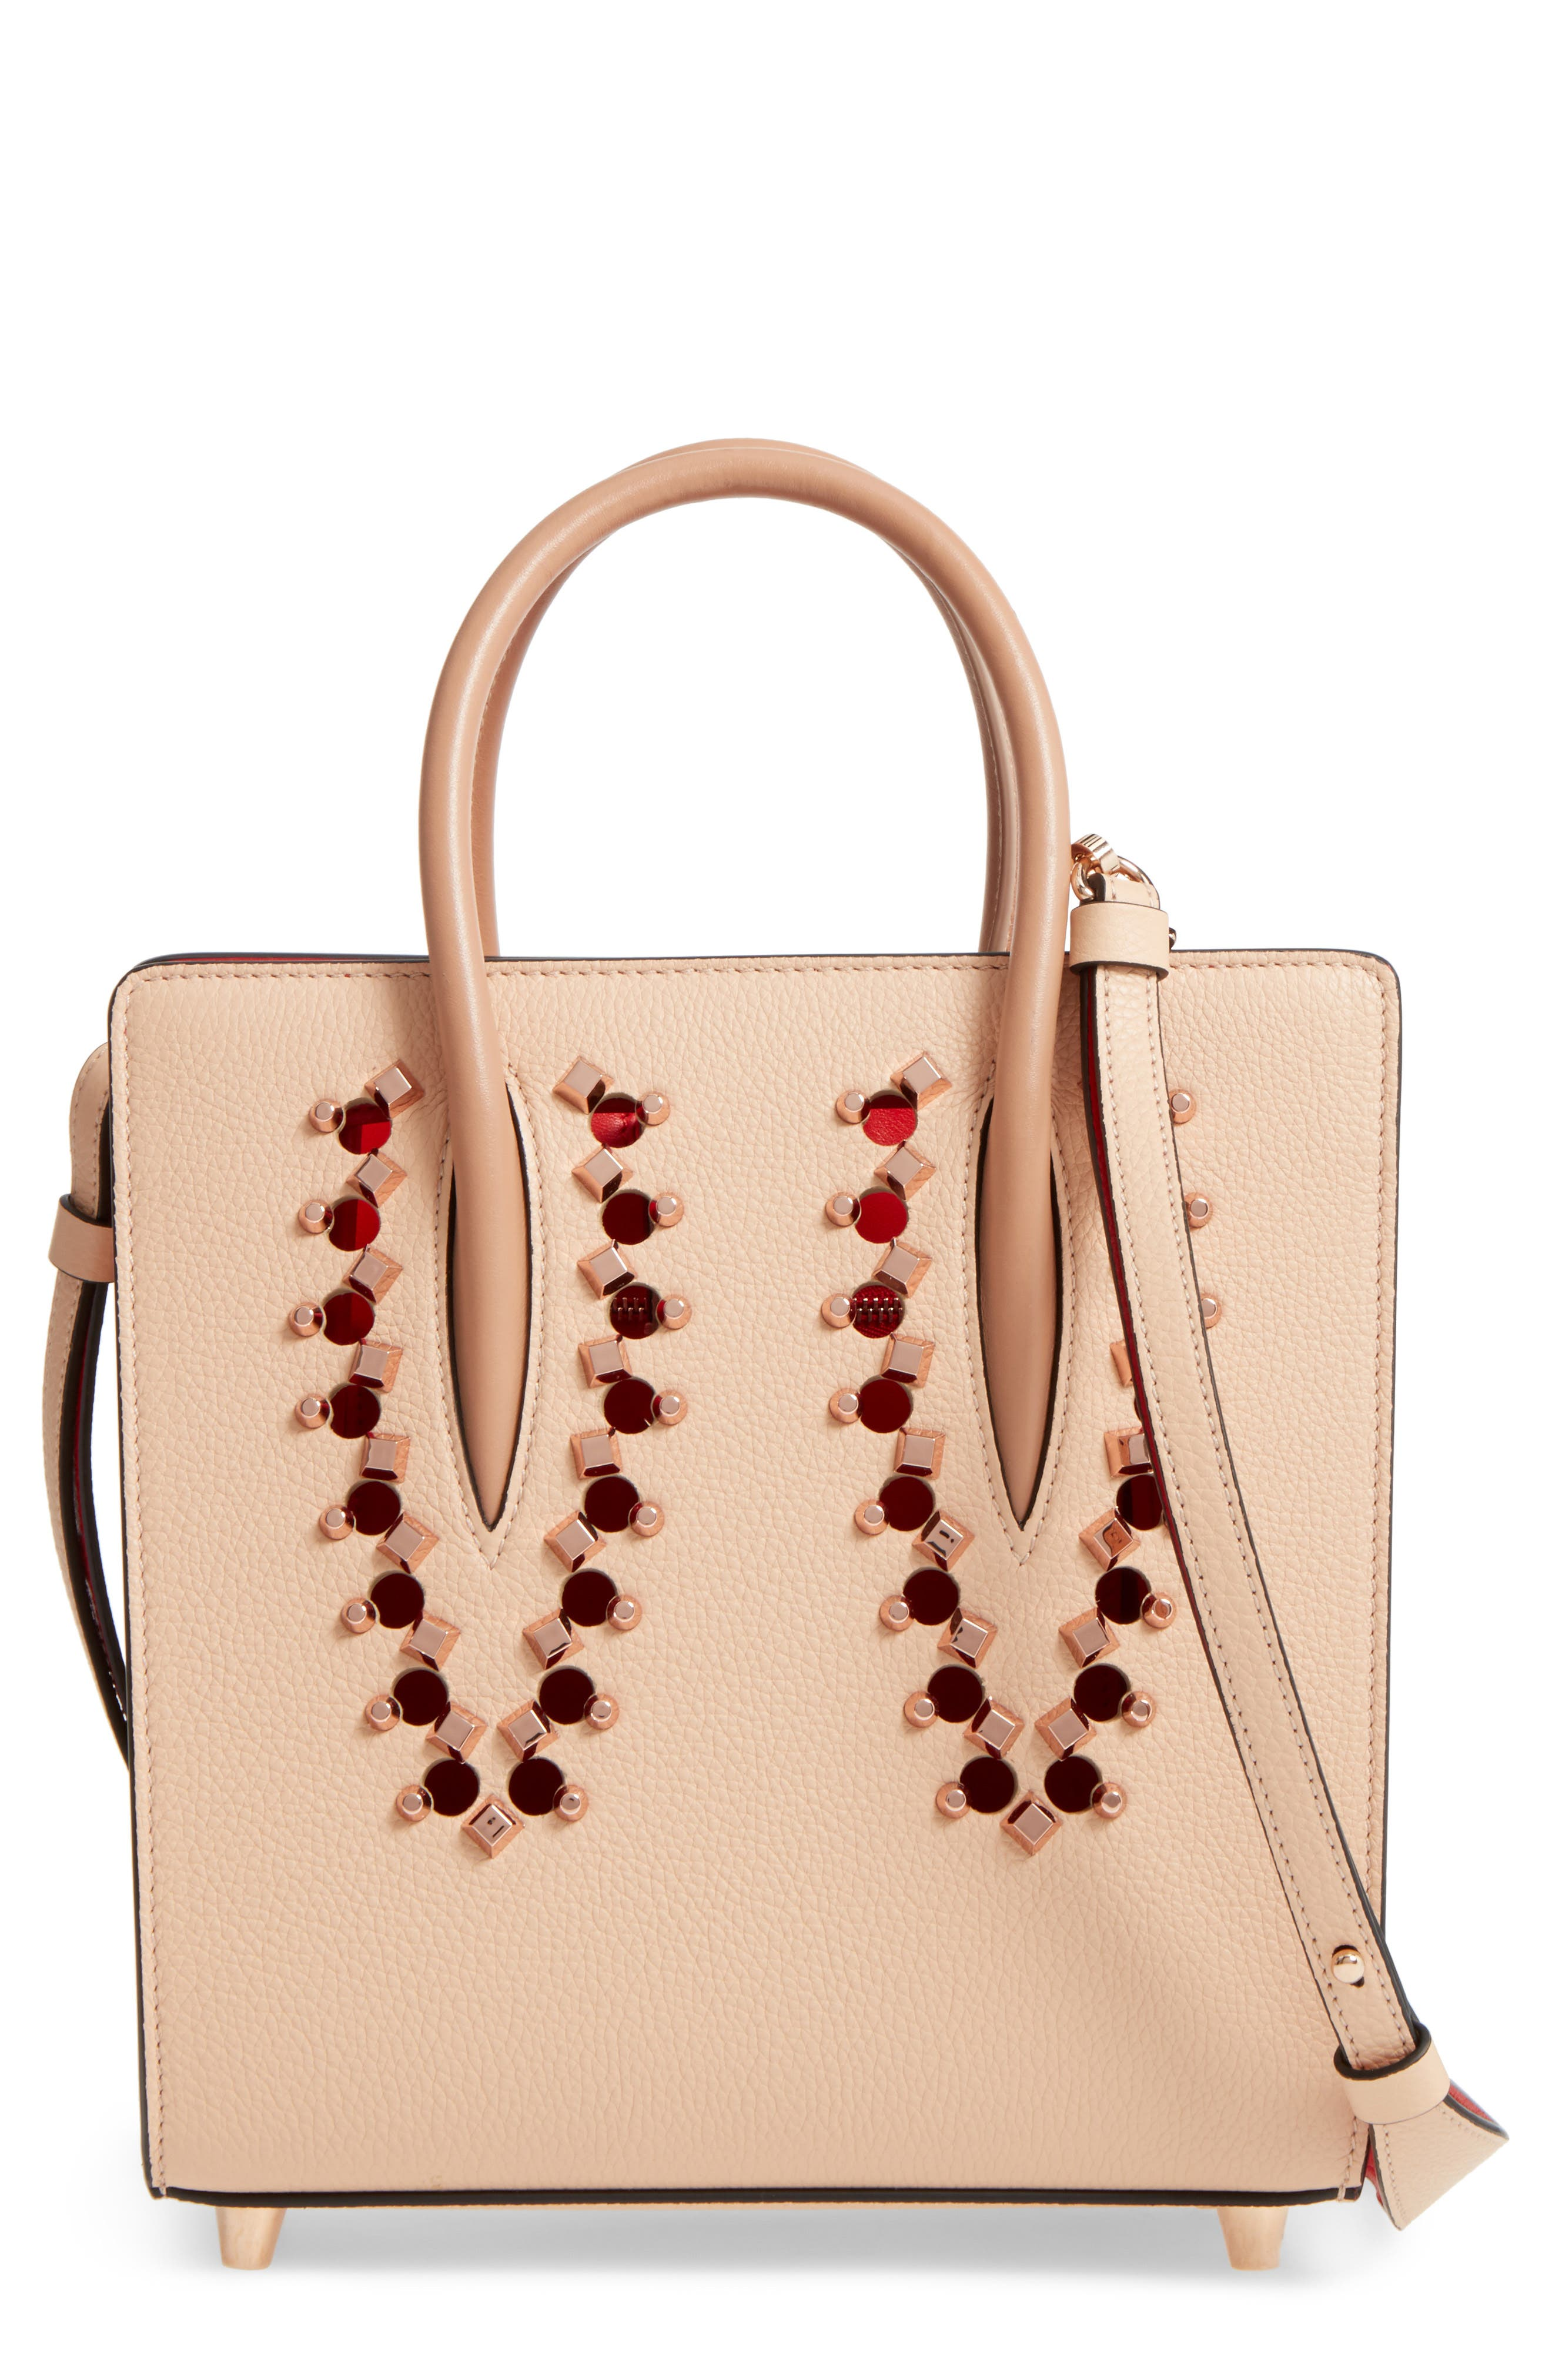 Christian Louboutin Small Paloma Empire Leather Tote